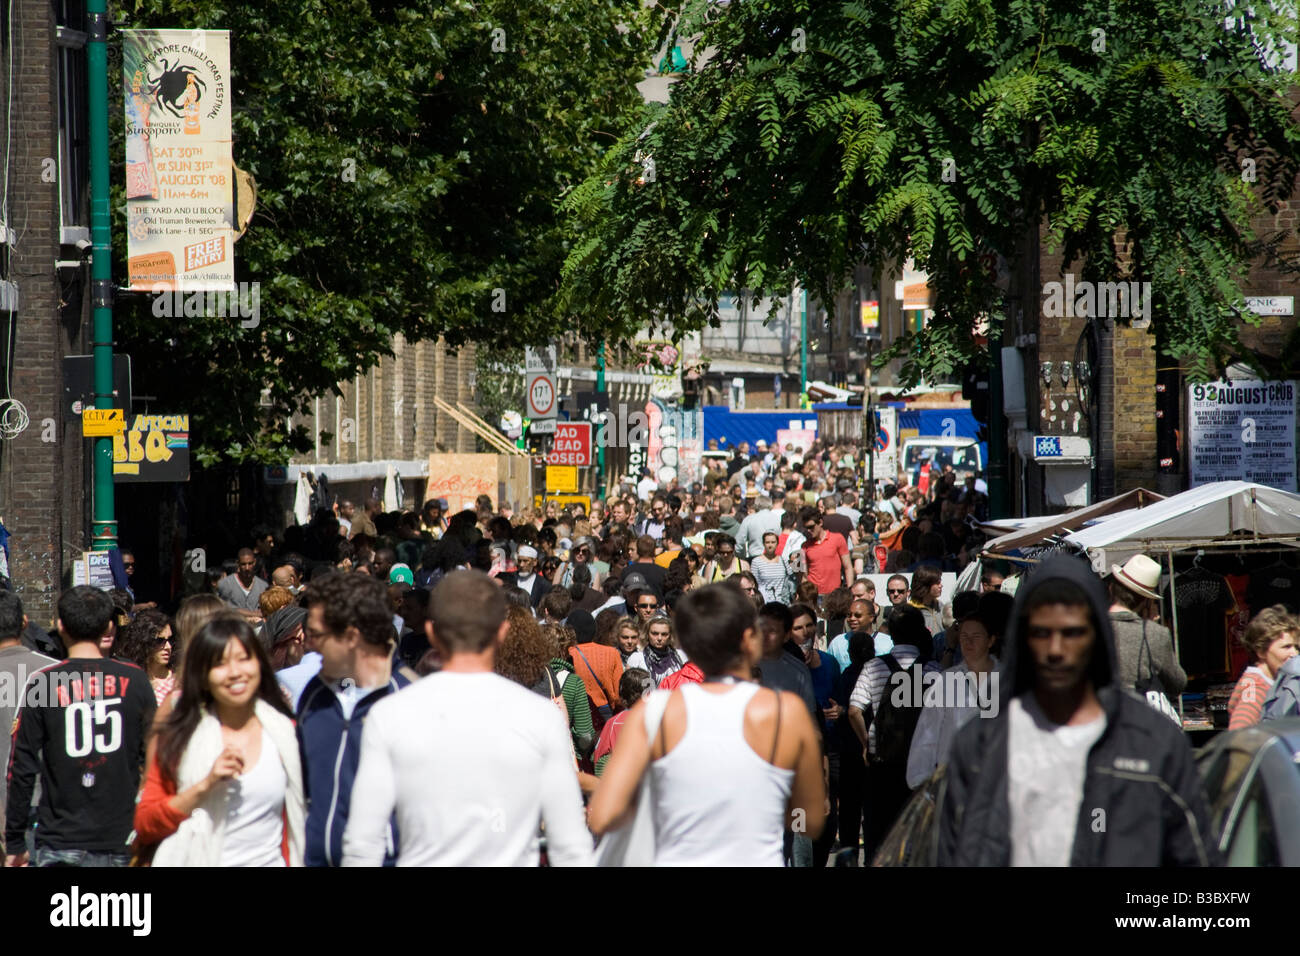 Crowds in Brick Lane Market. Shoreditch, Tower Hamlets, London, England Stock Photo